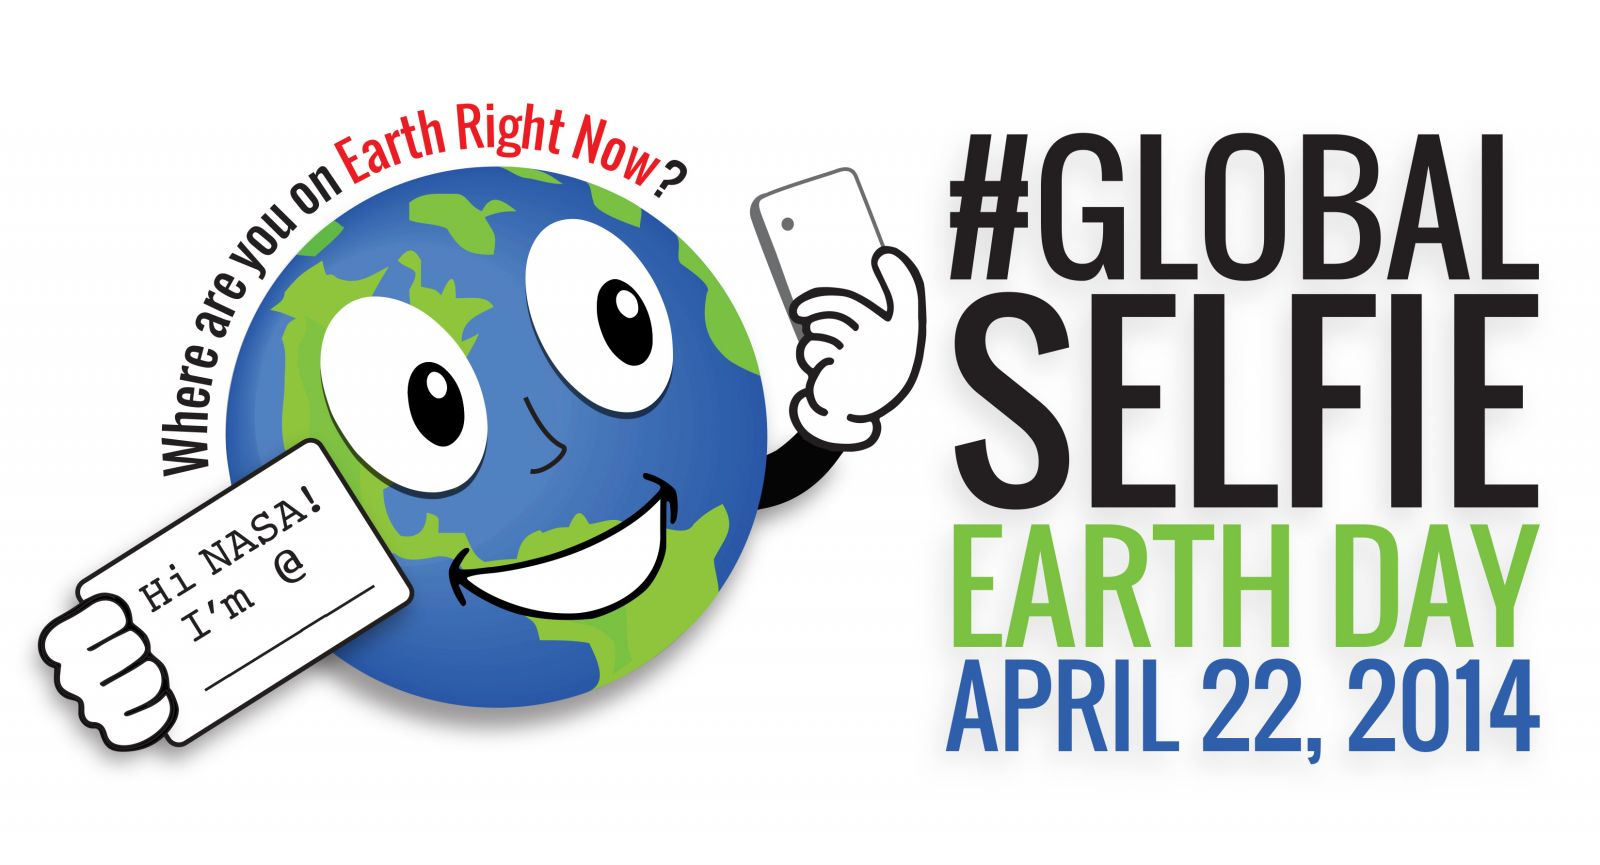 #GlobalSelfie on Earth Day for NASA